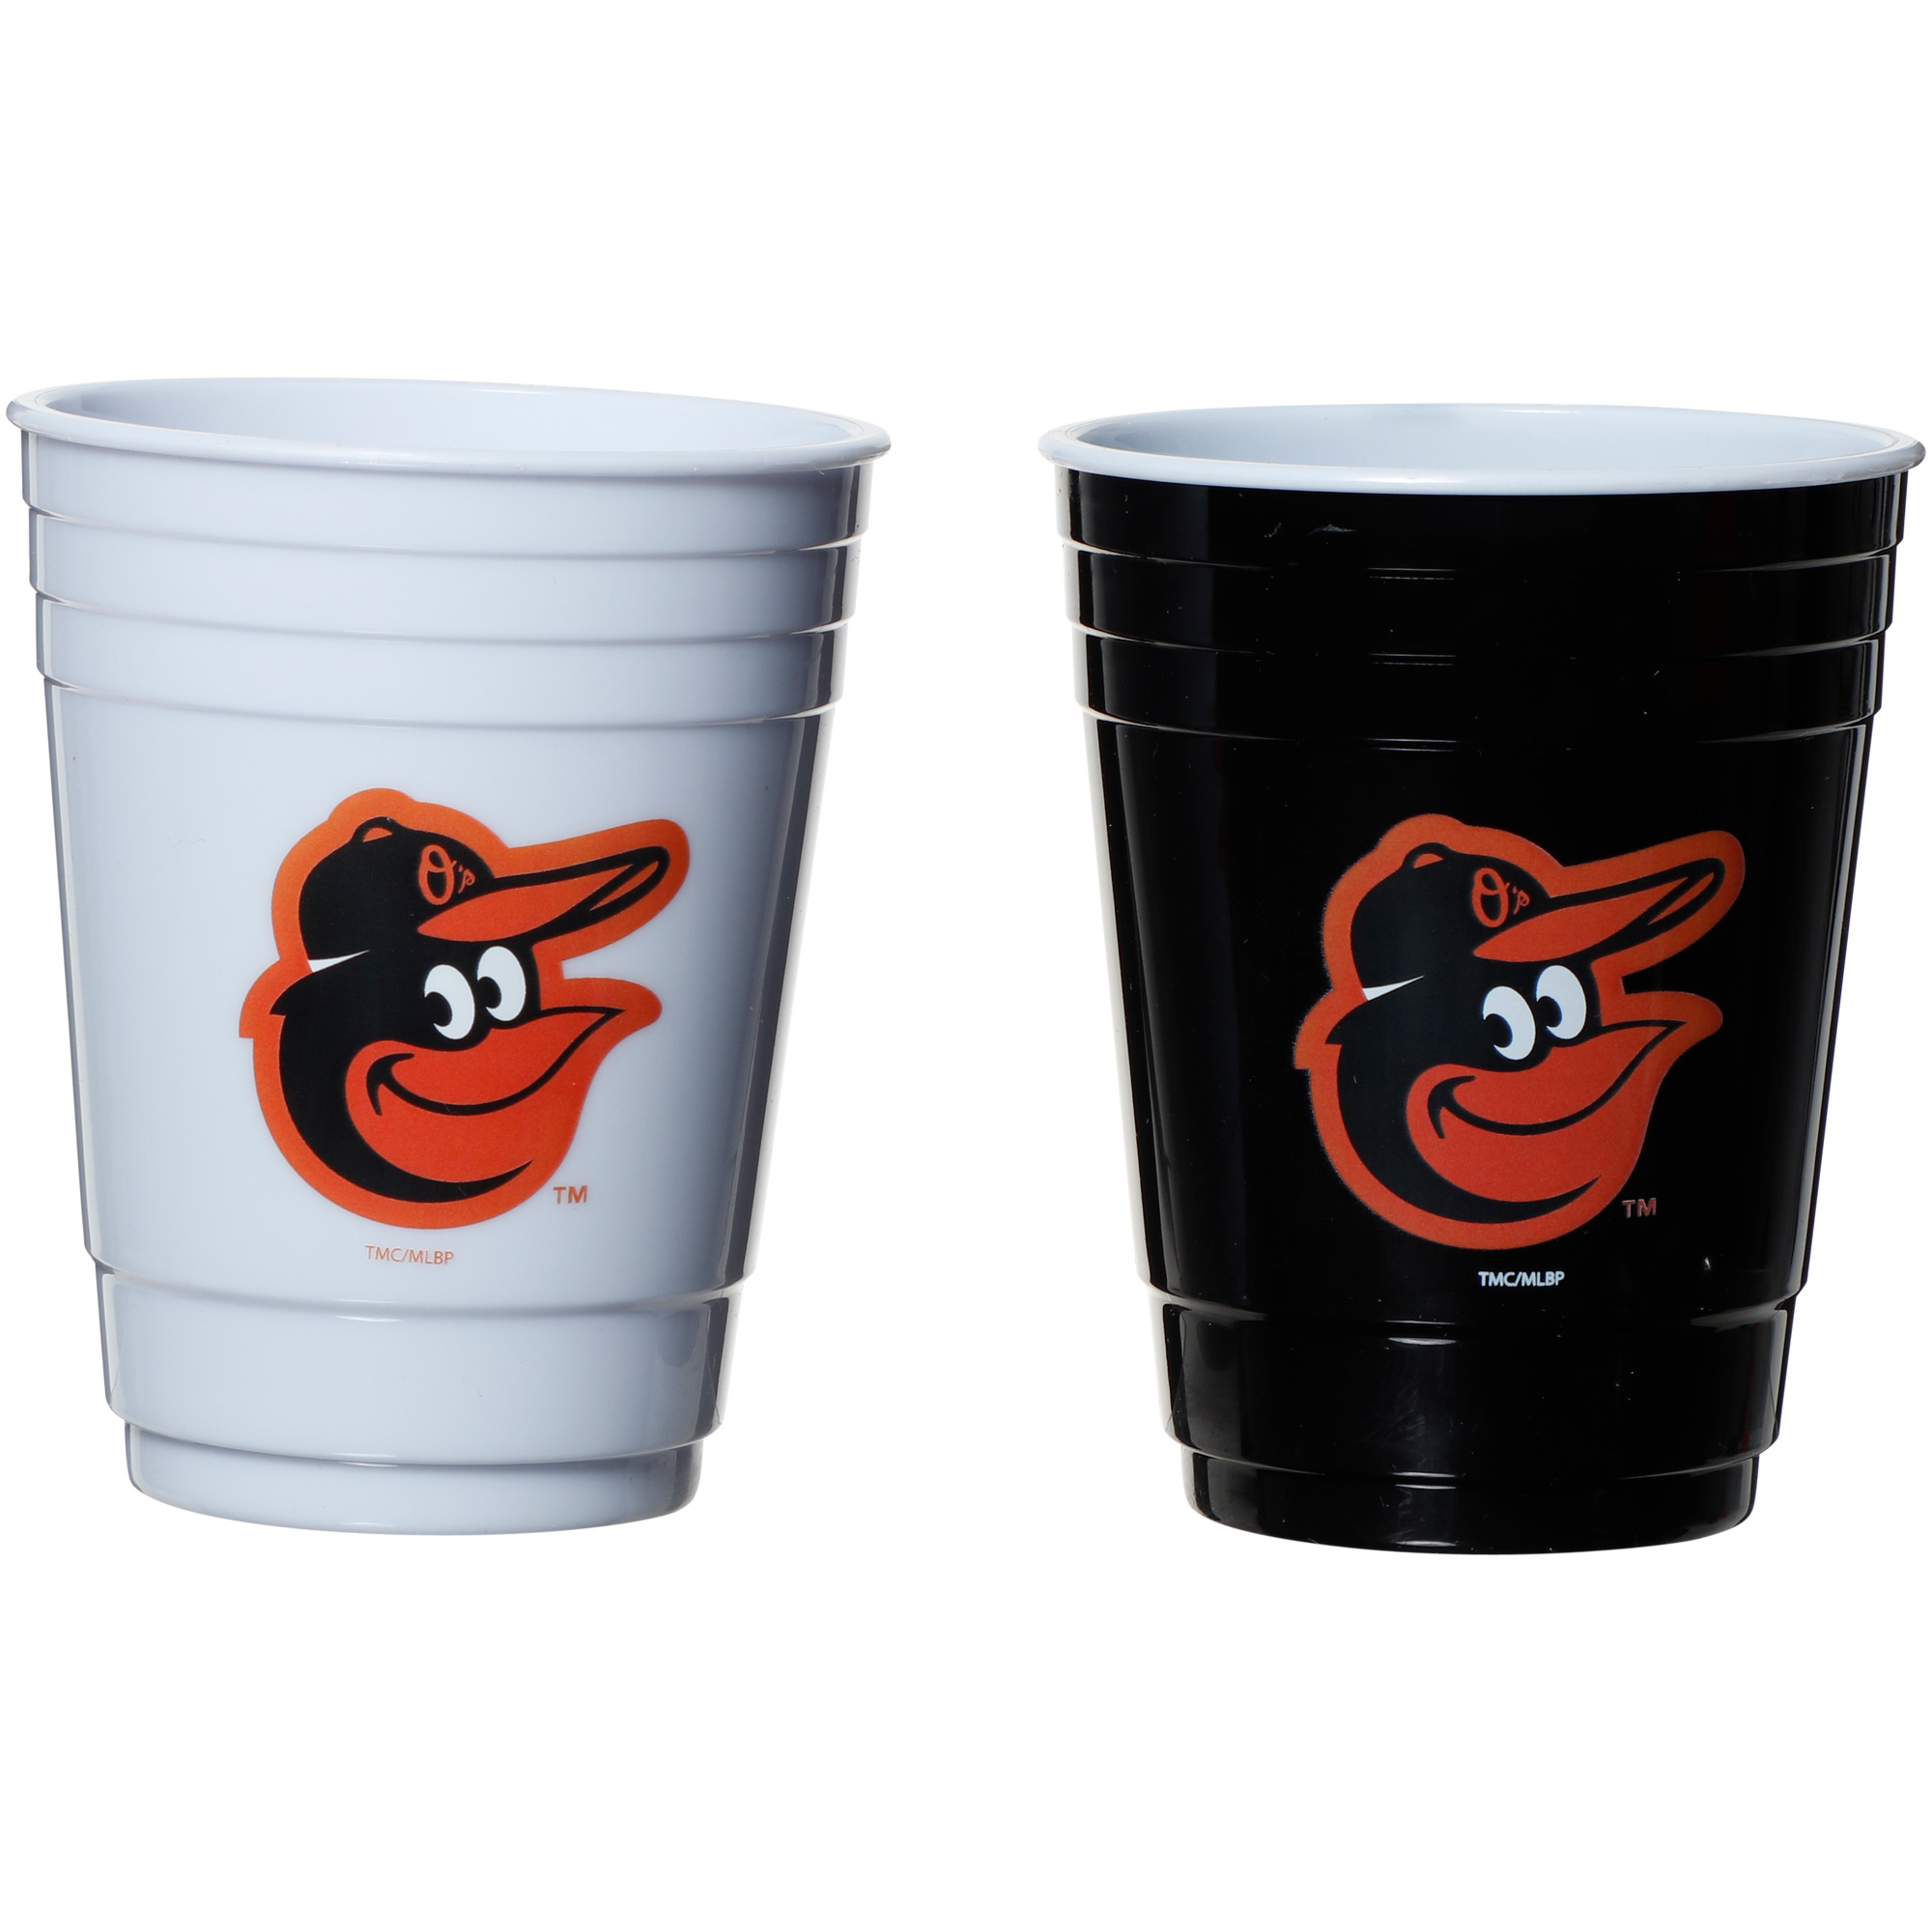 Baltimore Orioles Two-Pack Home And Away Plastic Cup - No Size